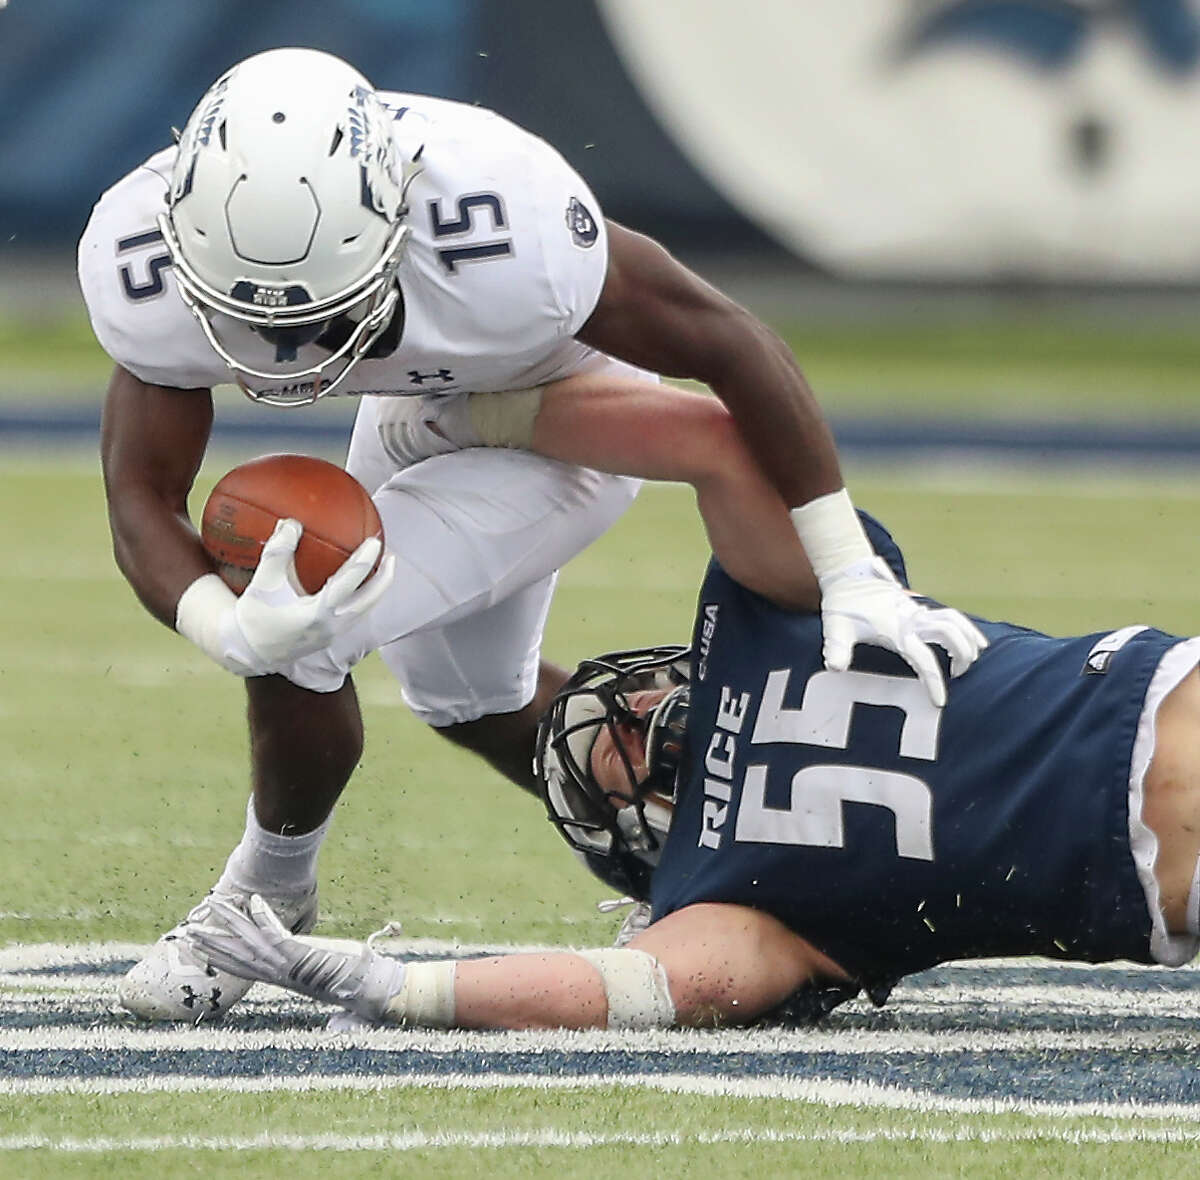 Old Dominion Monarchs wide receiver Isaiah Harper (15) is taken down by Rice Owls linebacker Blaze Alldredge (55) during action at Rice Stadium Saturday, Nov. 24, 2018, in Houston.